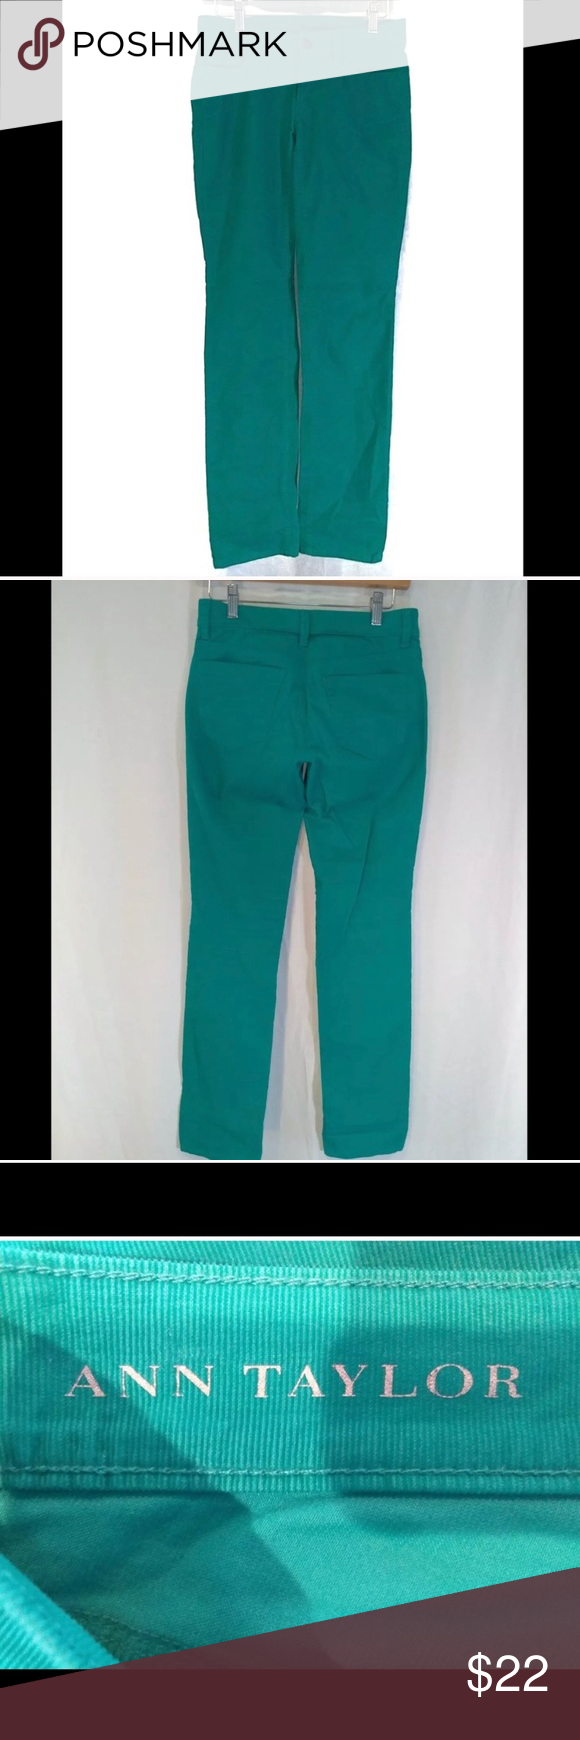 Ann Taylor Green Cotton Corduroy Pants Size 0 Ann Taylor corduroy pants size 0 green cotton EUC  Like new pair of green corduroy pants in excellent condition  Approximate Measurements:  Length 40 inches   Waist around 30 inches  Inseam 32 inches  Rise 8 inches  Hips 34 inches around   T1 333056461591  08172019AB Ann Taylor Pants Straight Leg